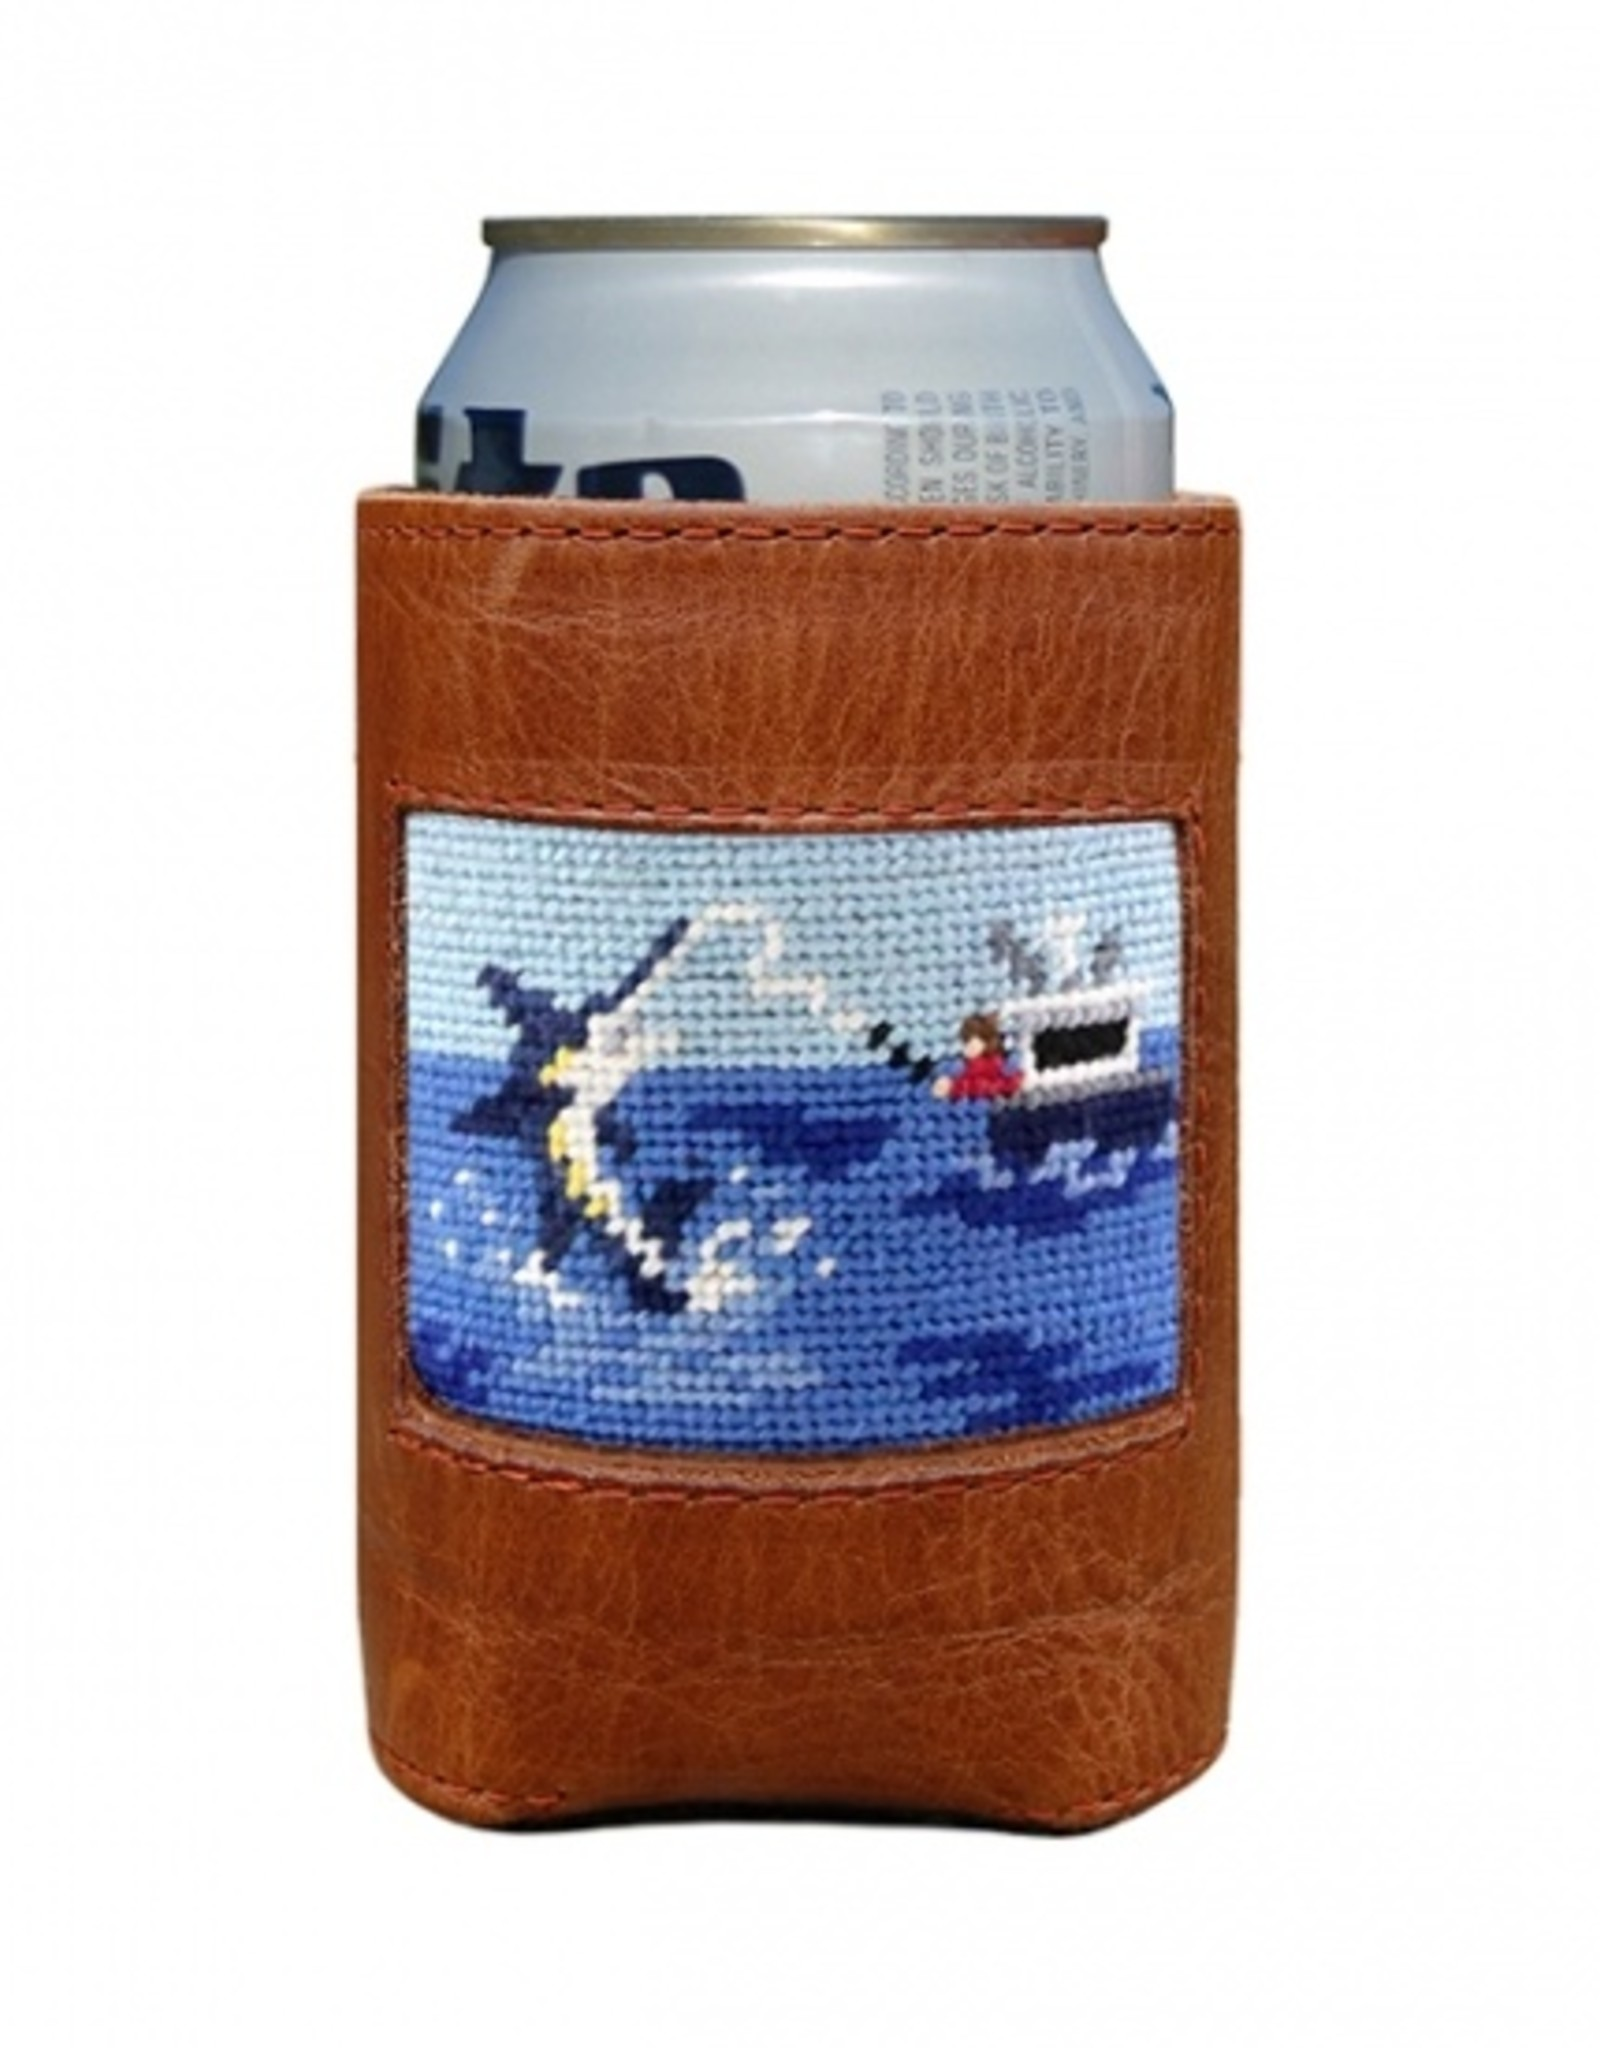 Smathers & Branson Smathers & Branson - Can Cooler Offshore Fishing